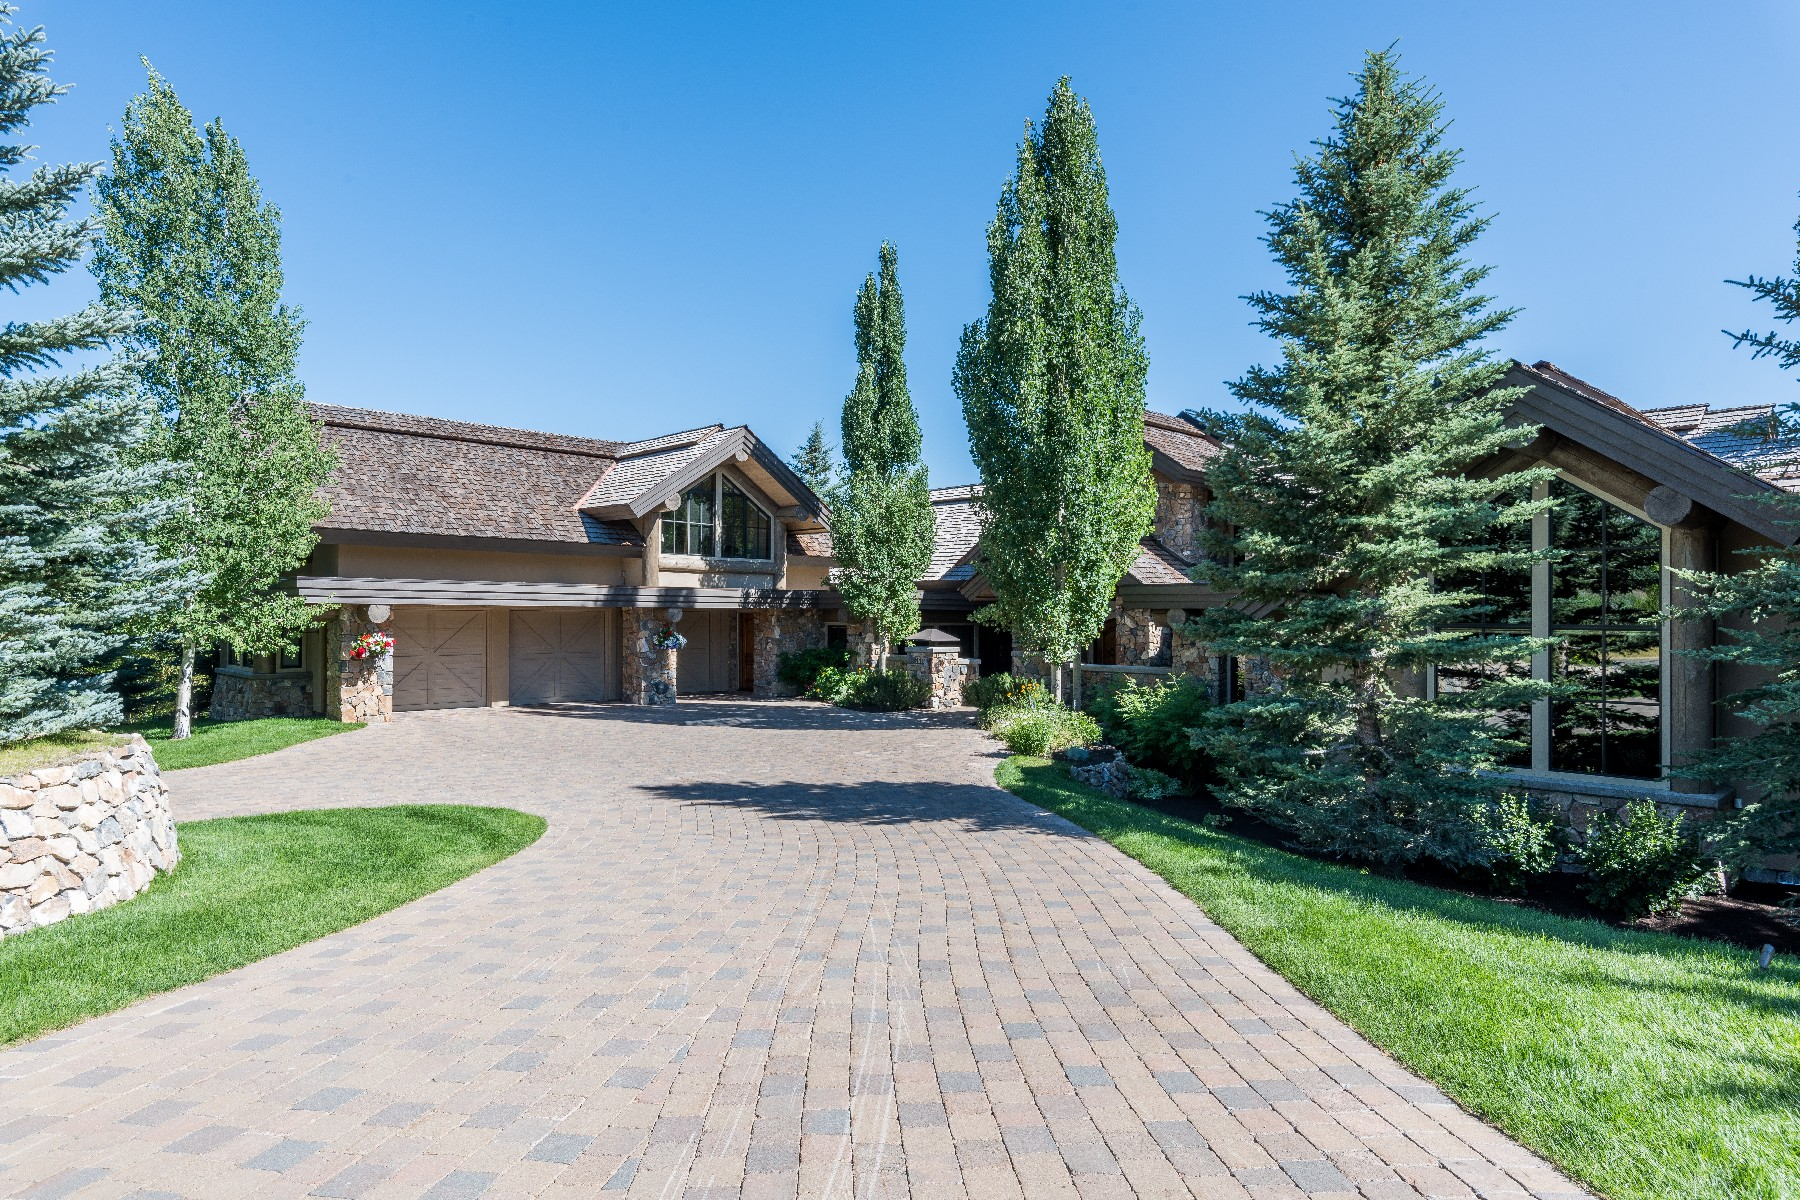 Single Family Home for Active at Luxury Sun Valley Estate 111 Sagewillow Rd Sun Valley, Idaho 83353 United States